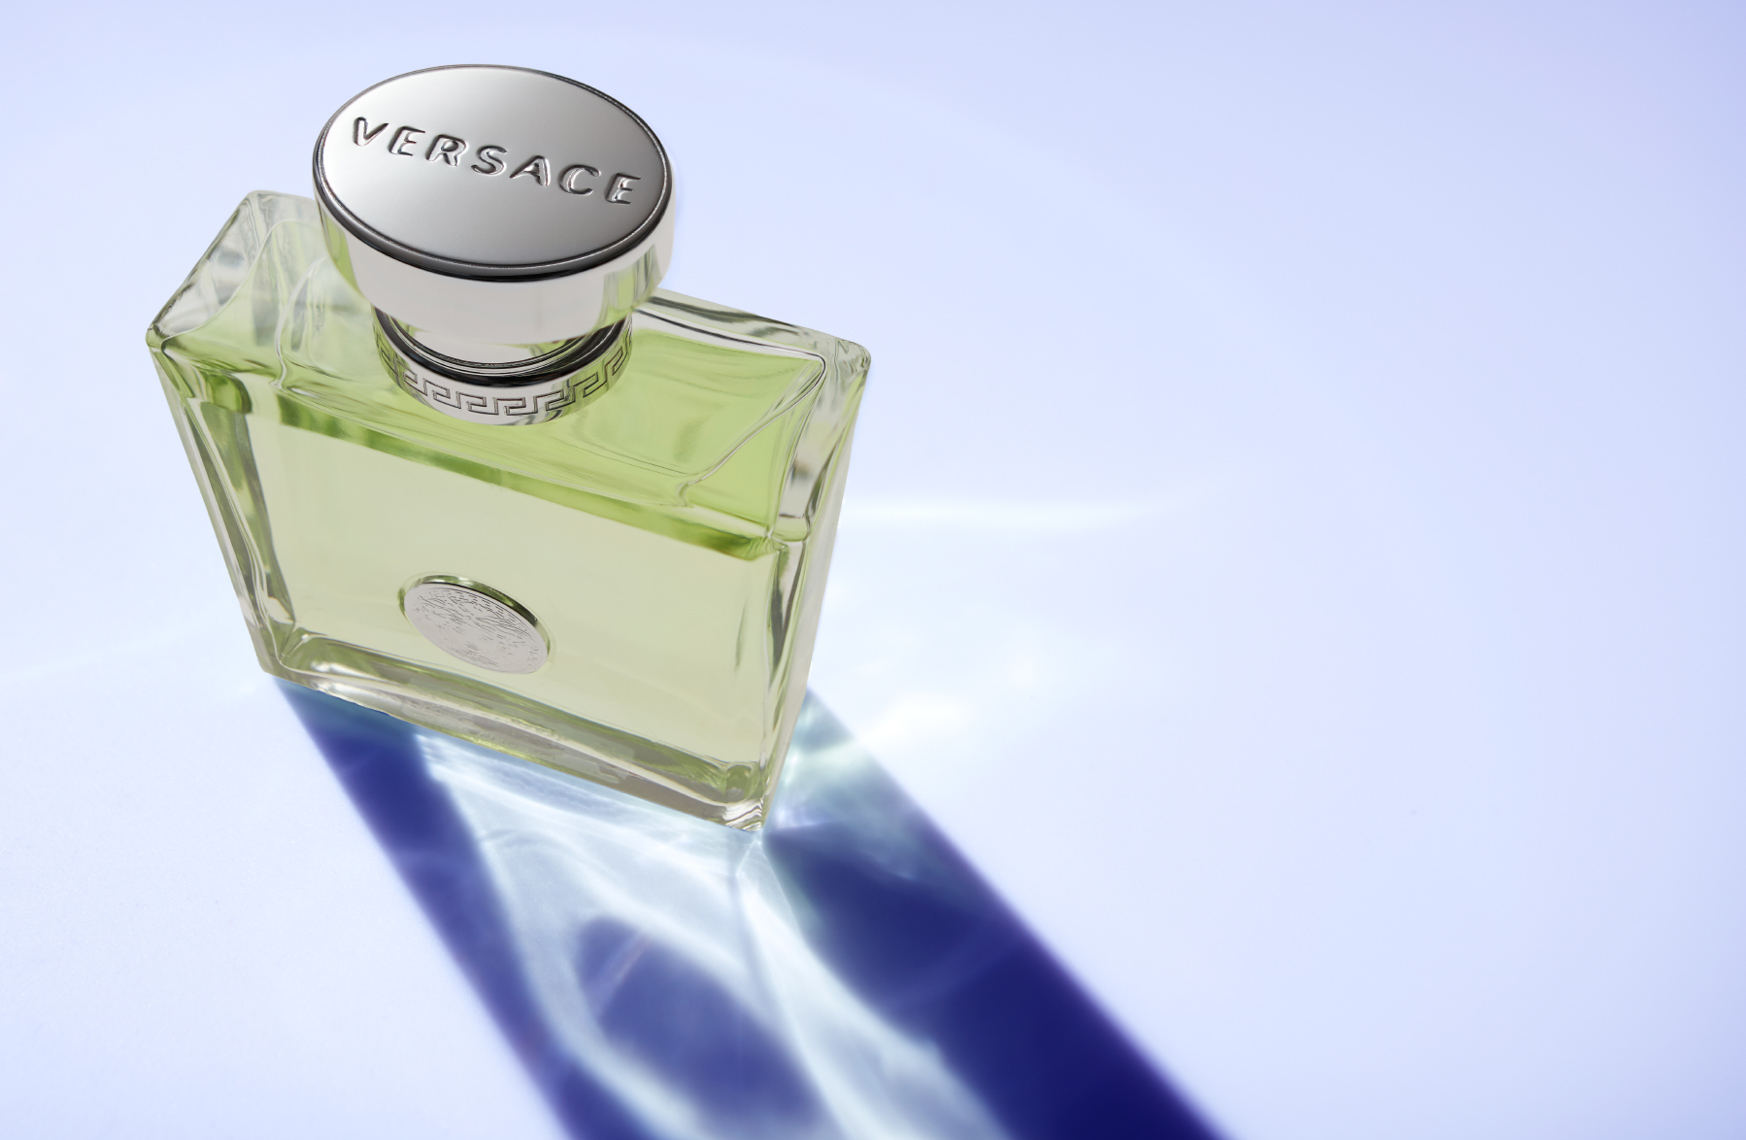 bottle of green perfume with shadow on blue surface